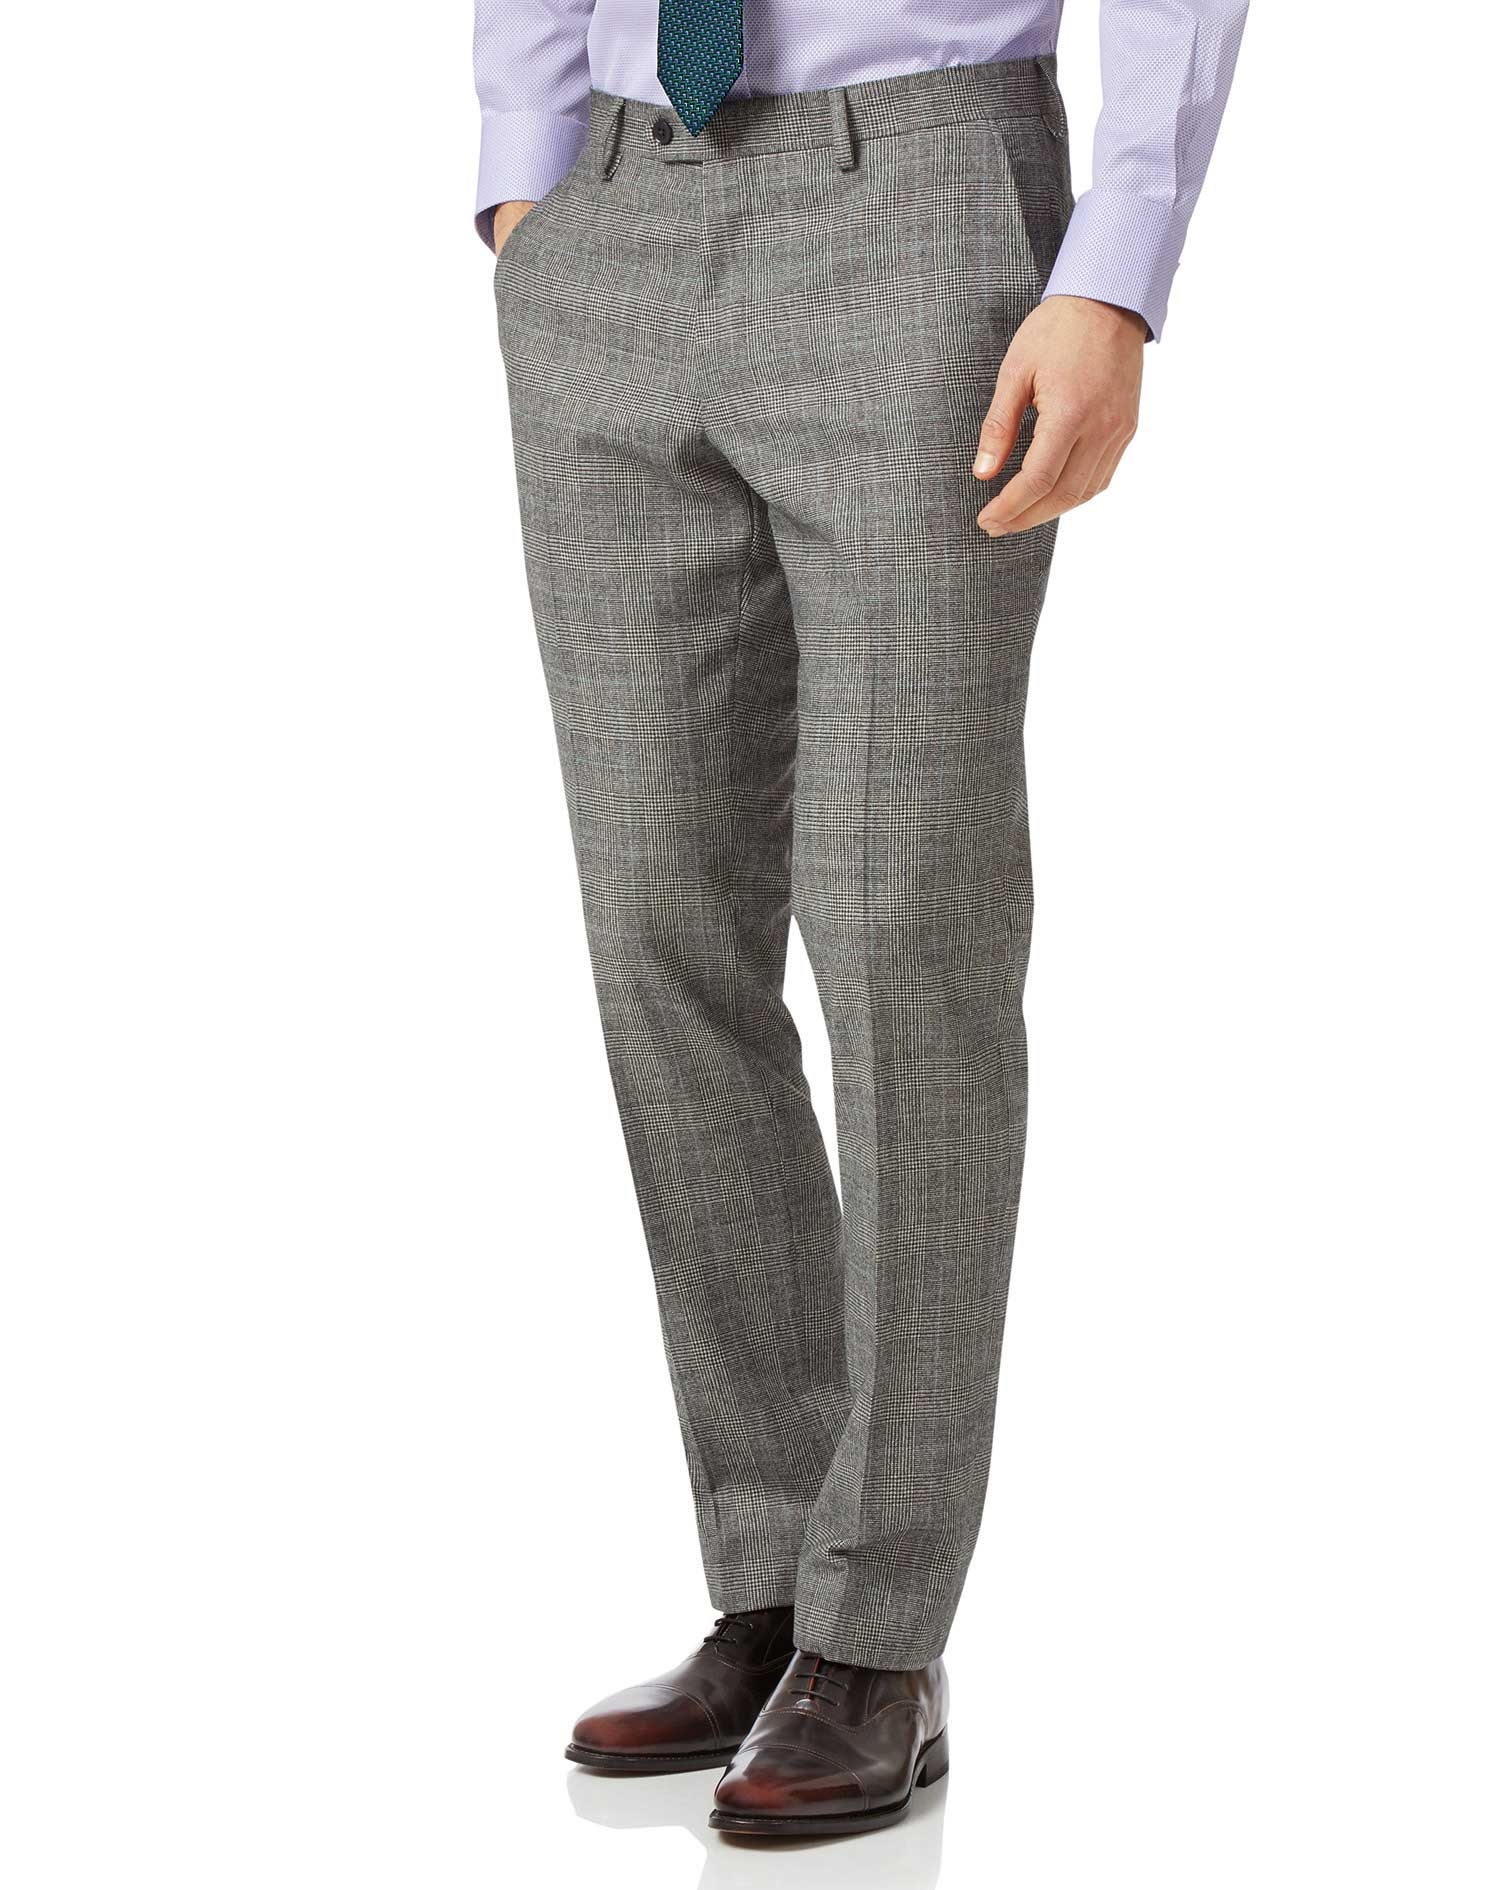 Grey Slim Fit Prince Of Wales Check Flannel Business Suit Trousers Size W34 L38 by Charles Tyrwhitt